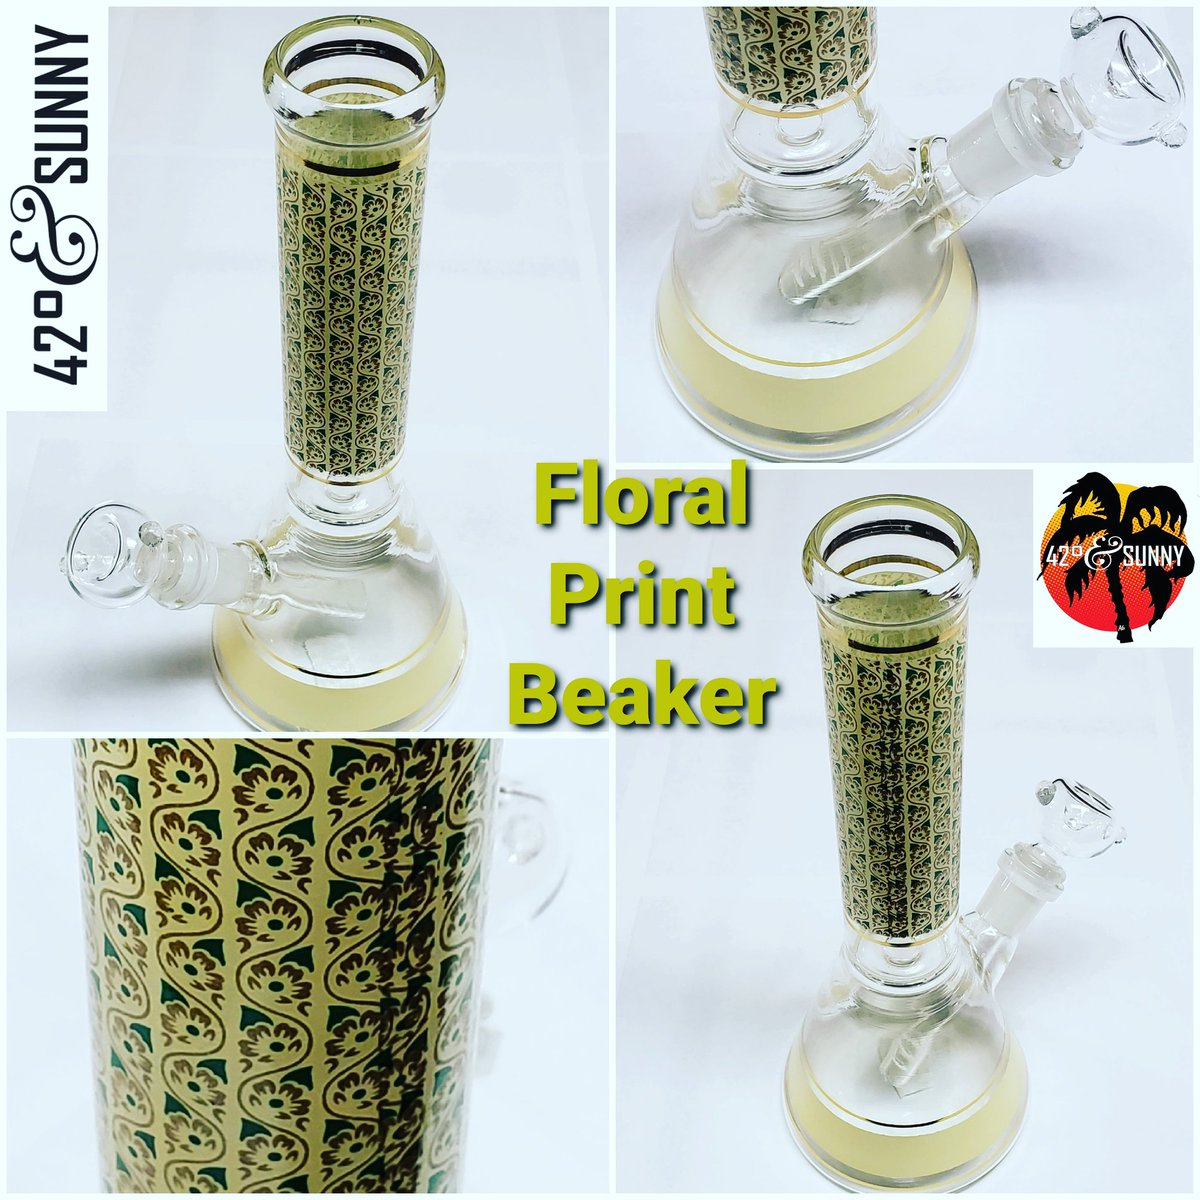 ✅ in & ✅ out the new pieces including this Floral Print Beaker!  #smokingdeals on #smokingaccessories #LakewoodNY #headshop #headshoplife #420friendly #420family #420andsunny #42degreesglass #42degreesandsunny https://t.co/uKU1GOKspH